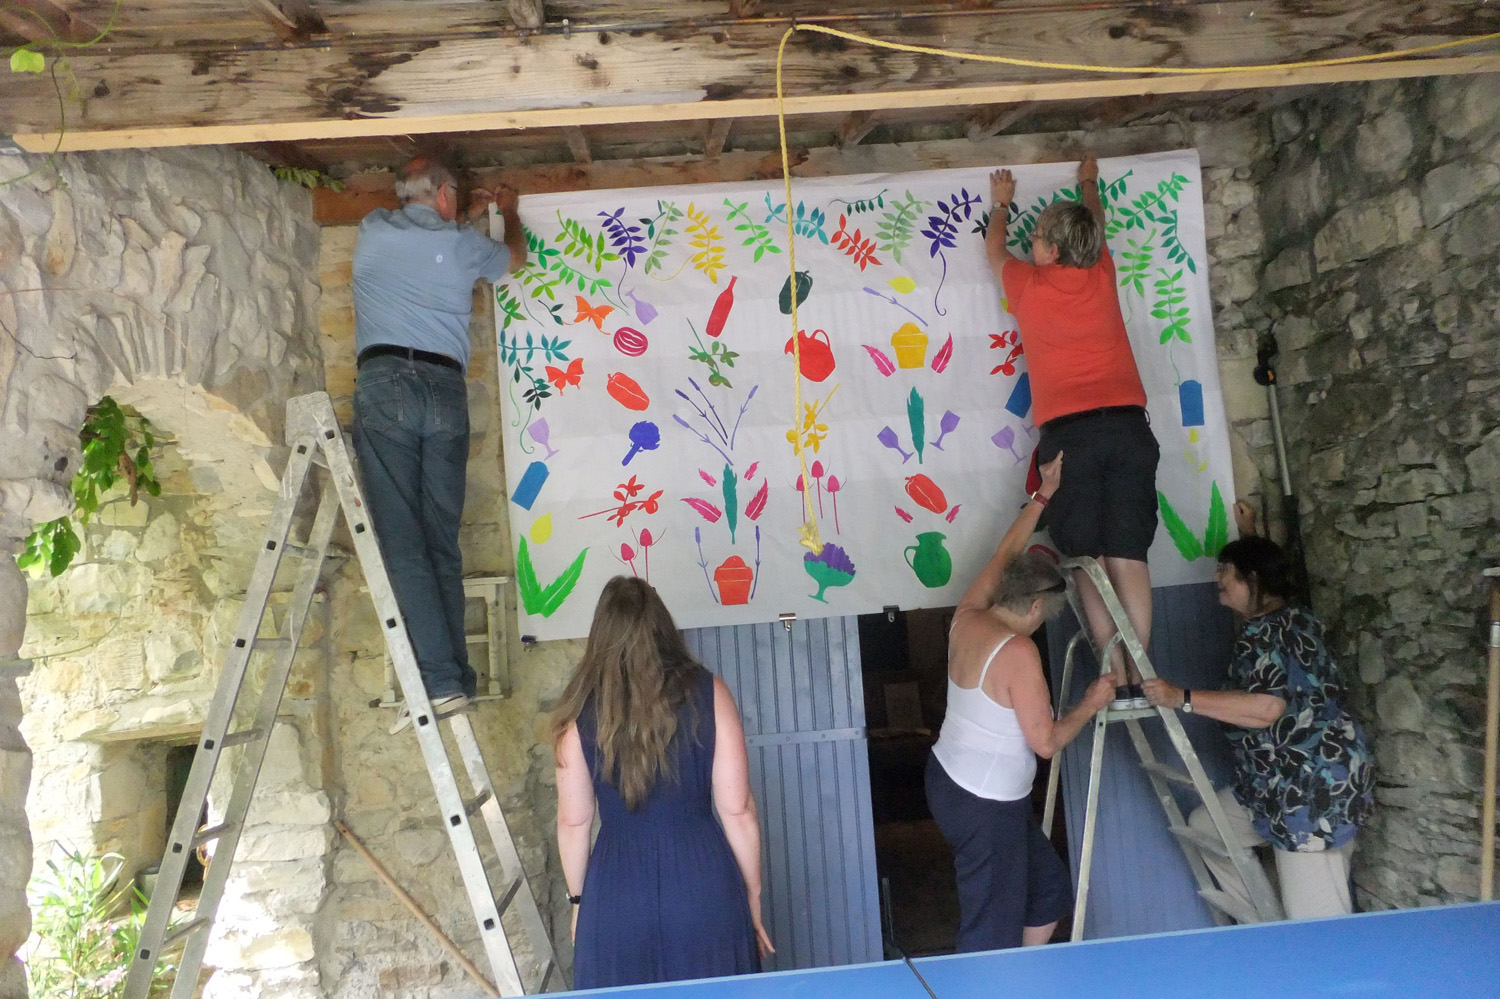 Putting up the big Matisse cut-out